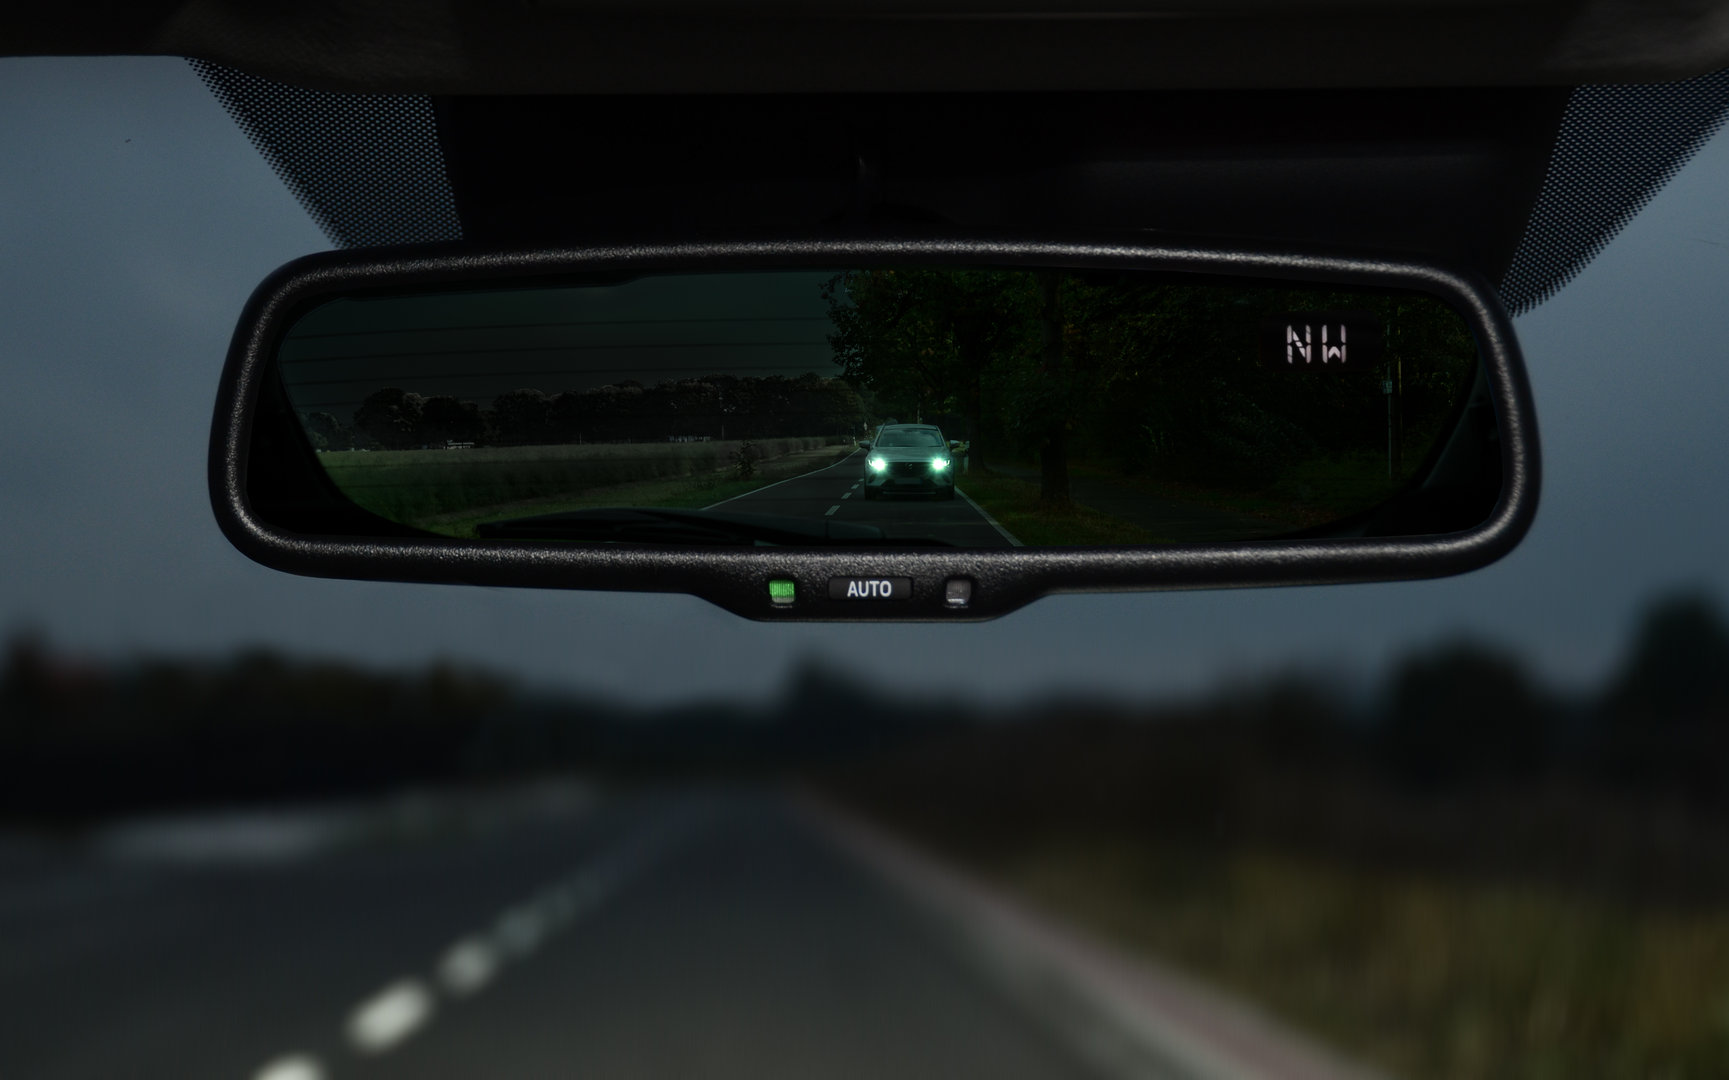 Car Rear View Mirror: Auto-Dimming Rearview Mirror